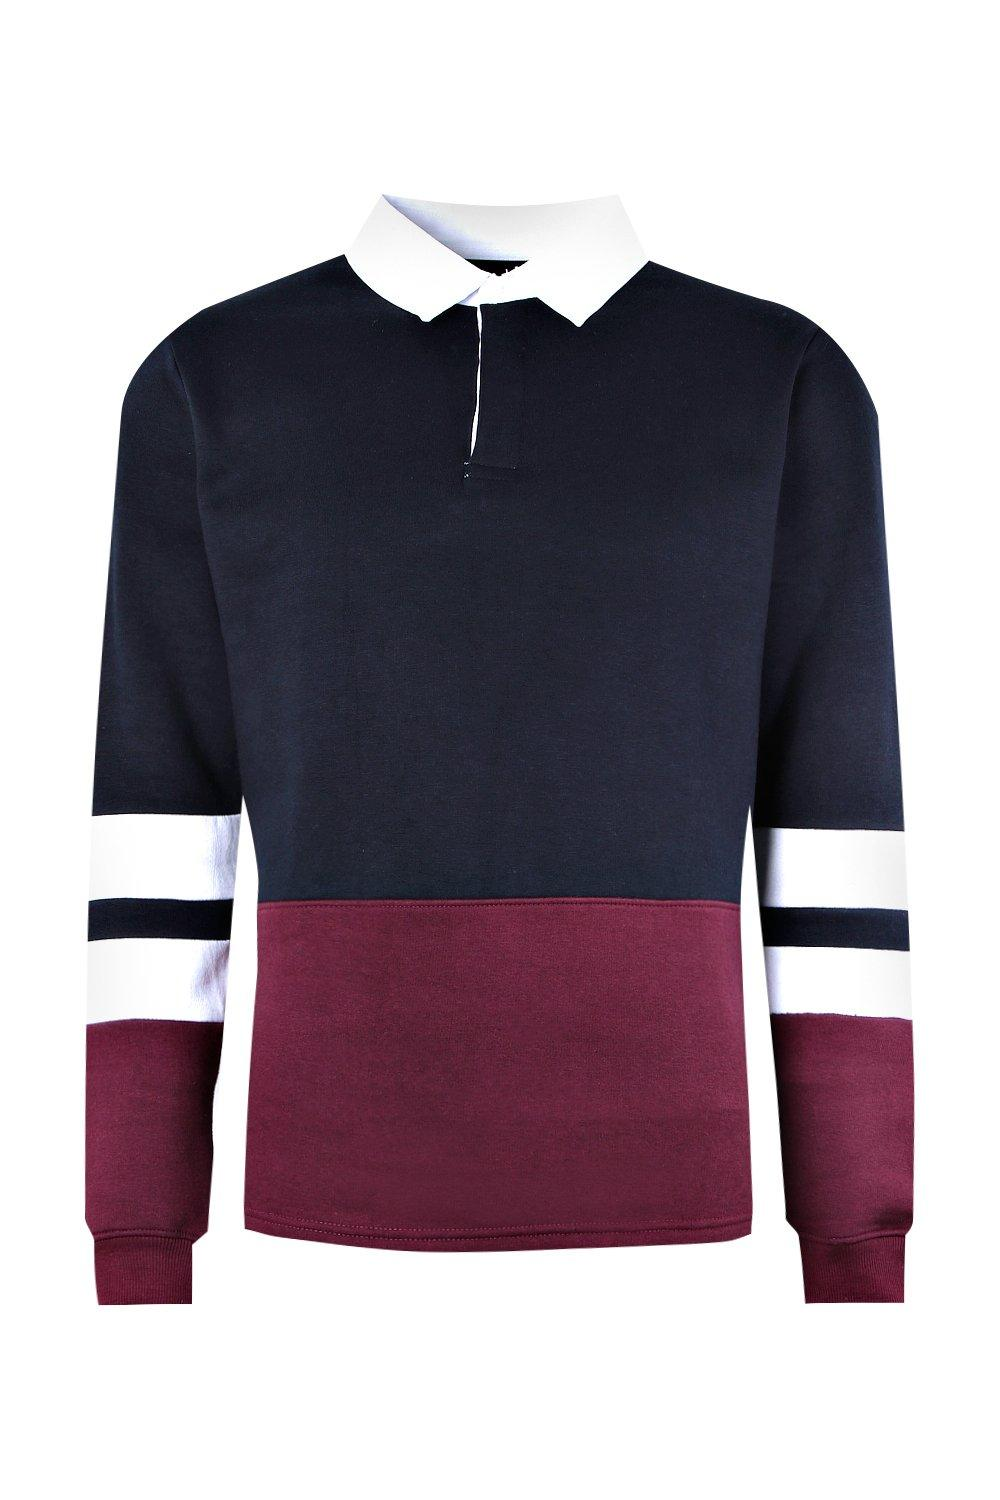 boohooMAN navy Colour Block Rugby Sweater